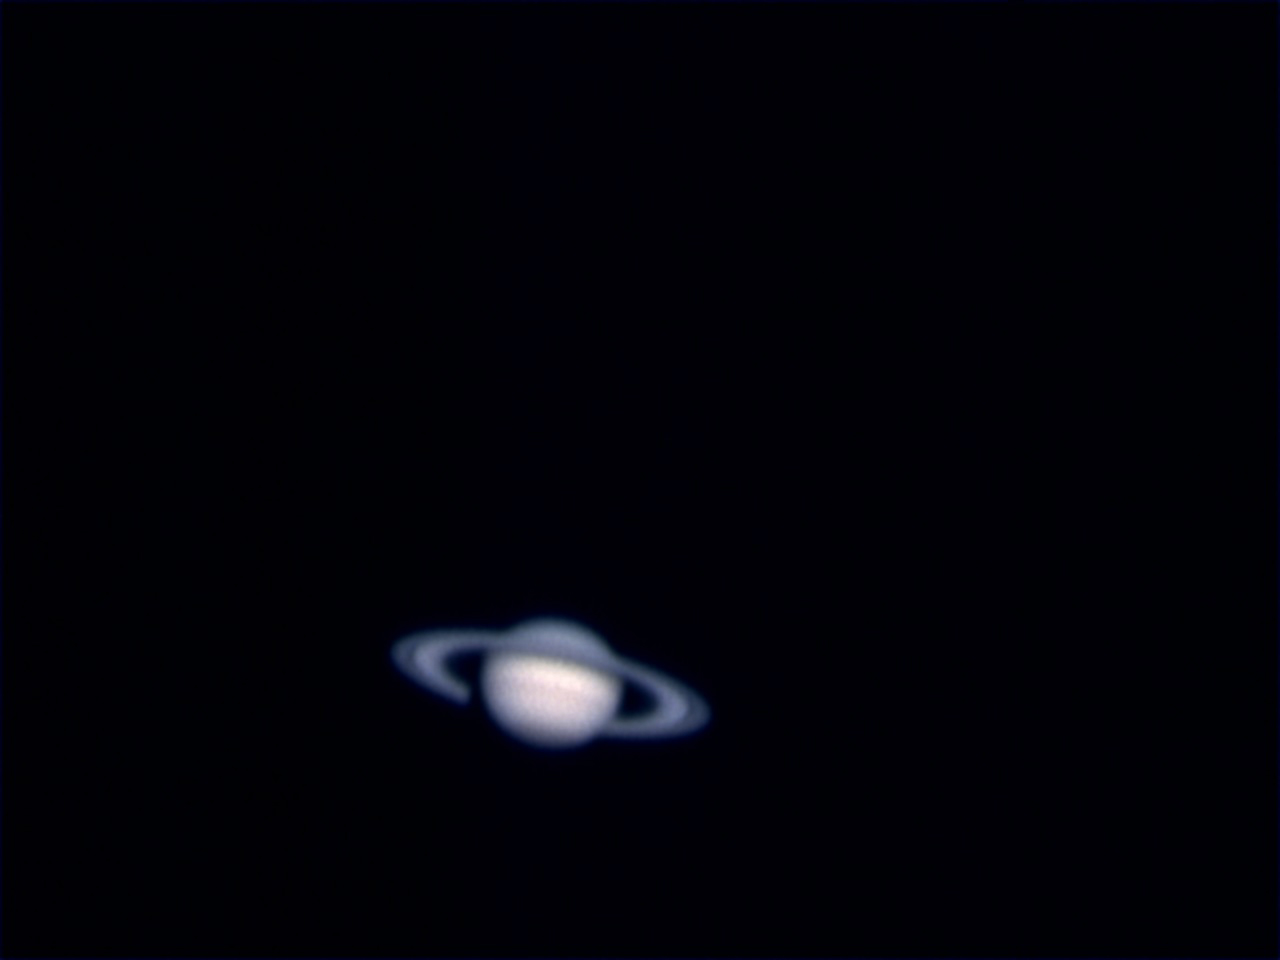 Saturn 8in Meade x2 Barlow 13 Apr07